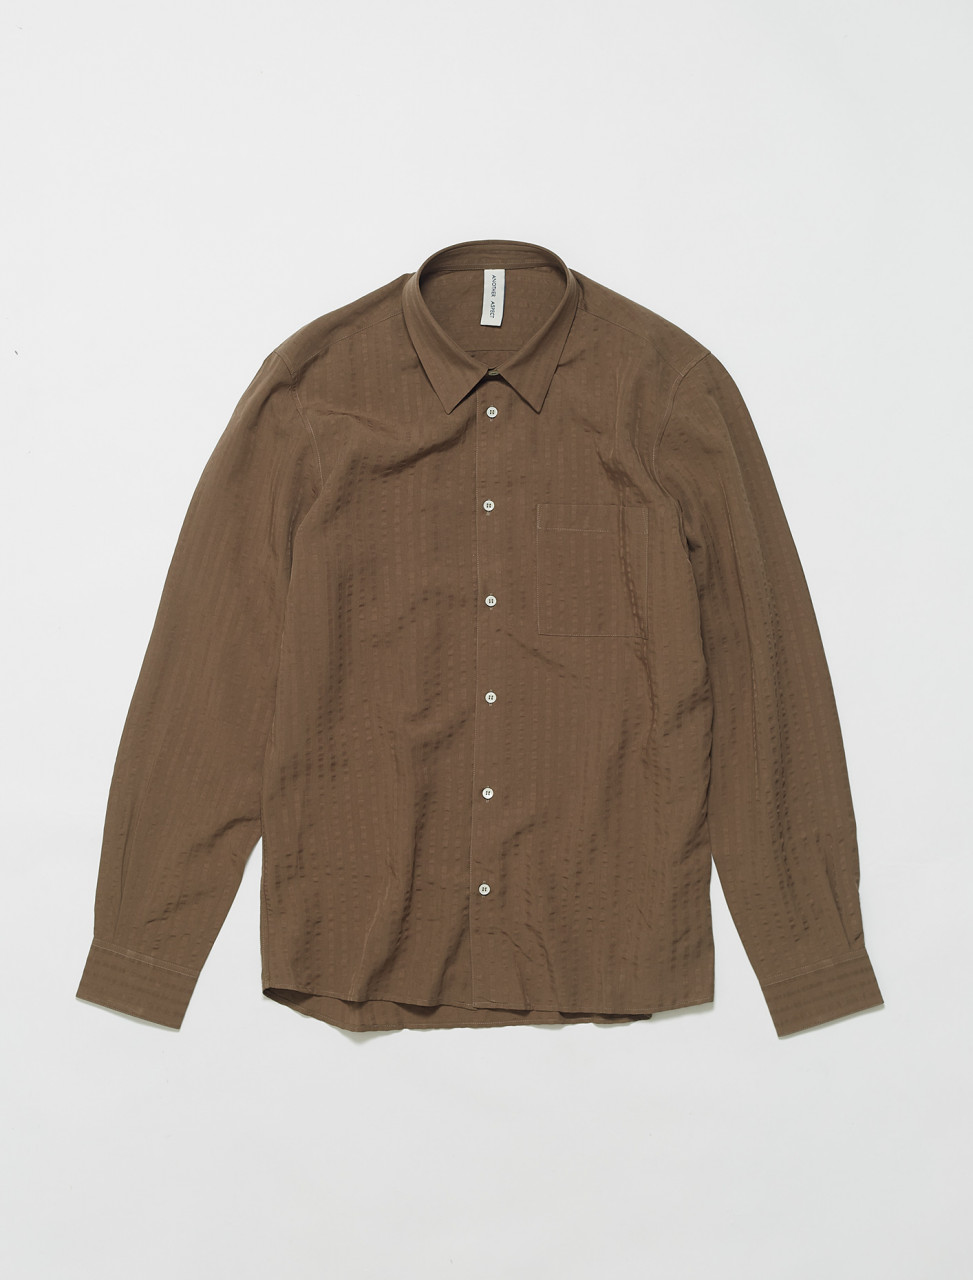 303030-300 ANOTHER ASPECT ANOTHER SHIRT 3.0 IN CARAMEL